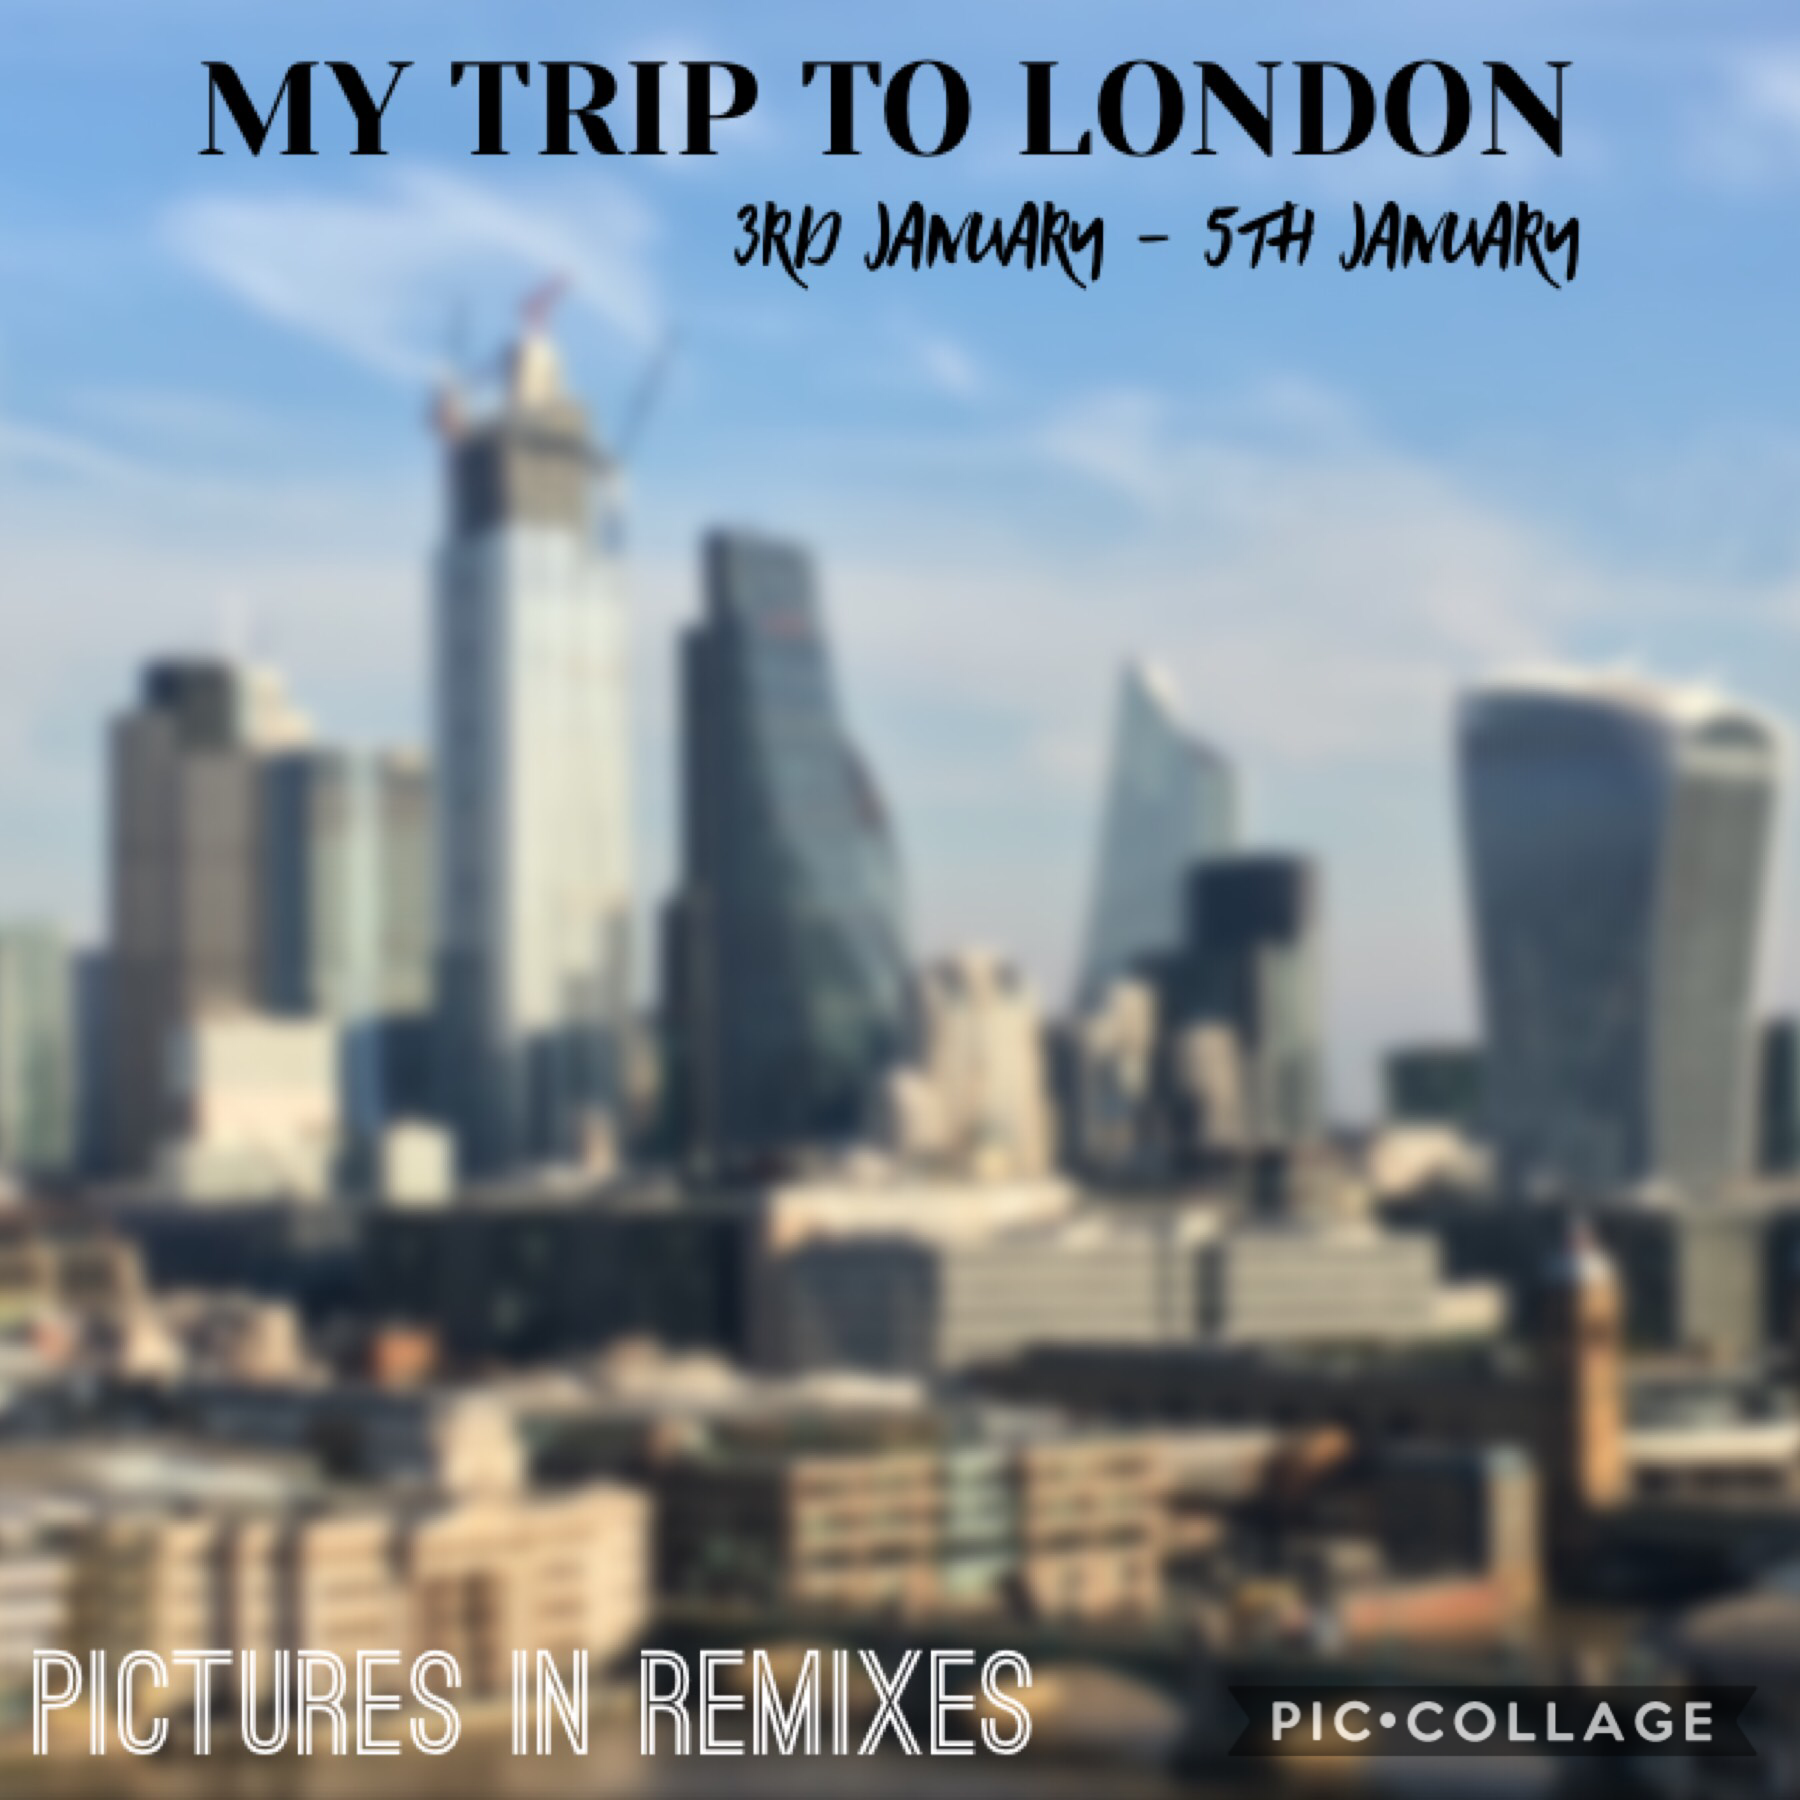 My trip to London Blog! Pictures in remixes! 🏙